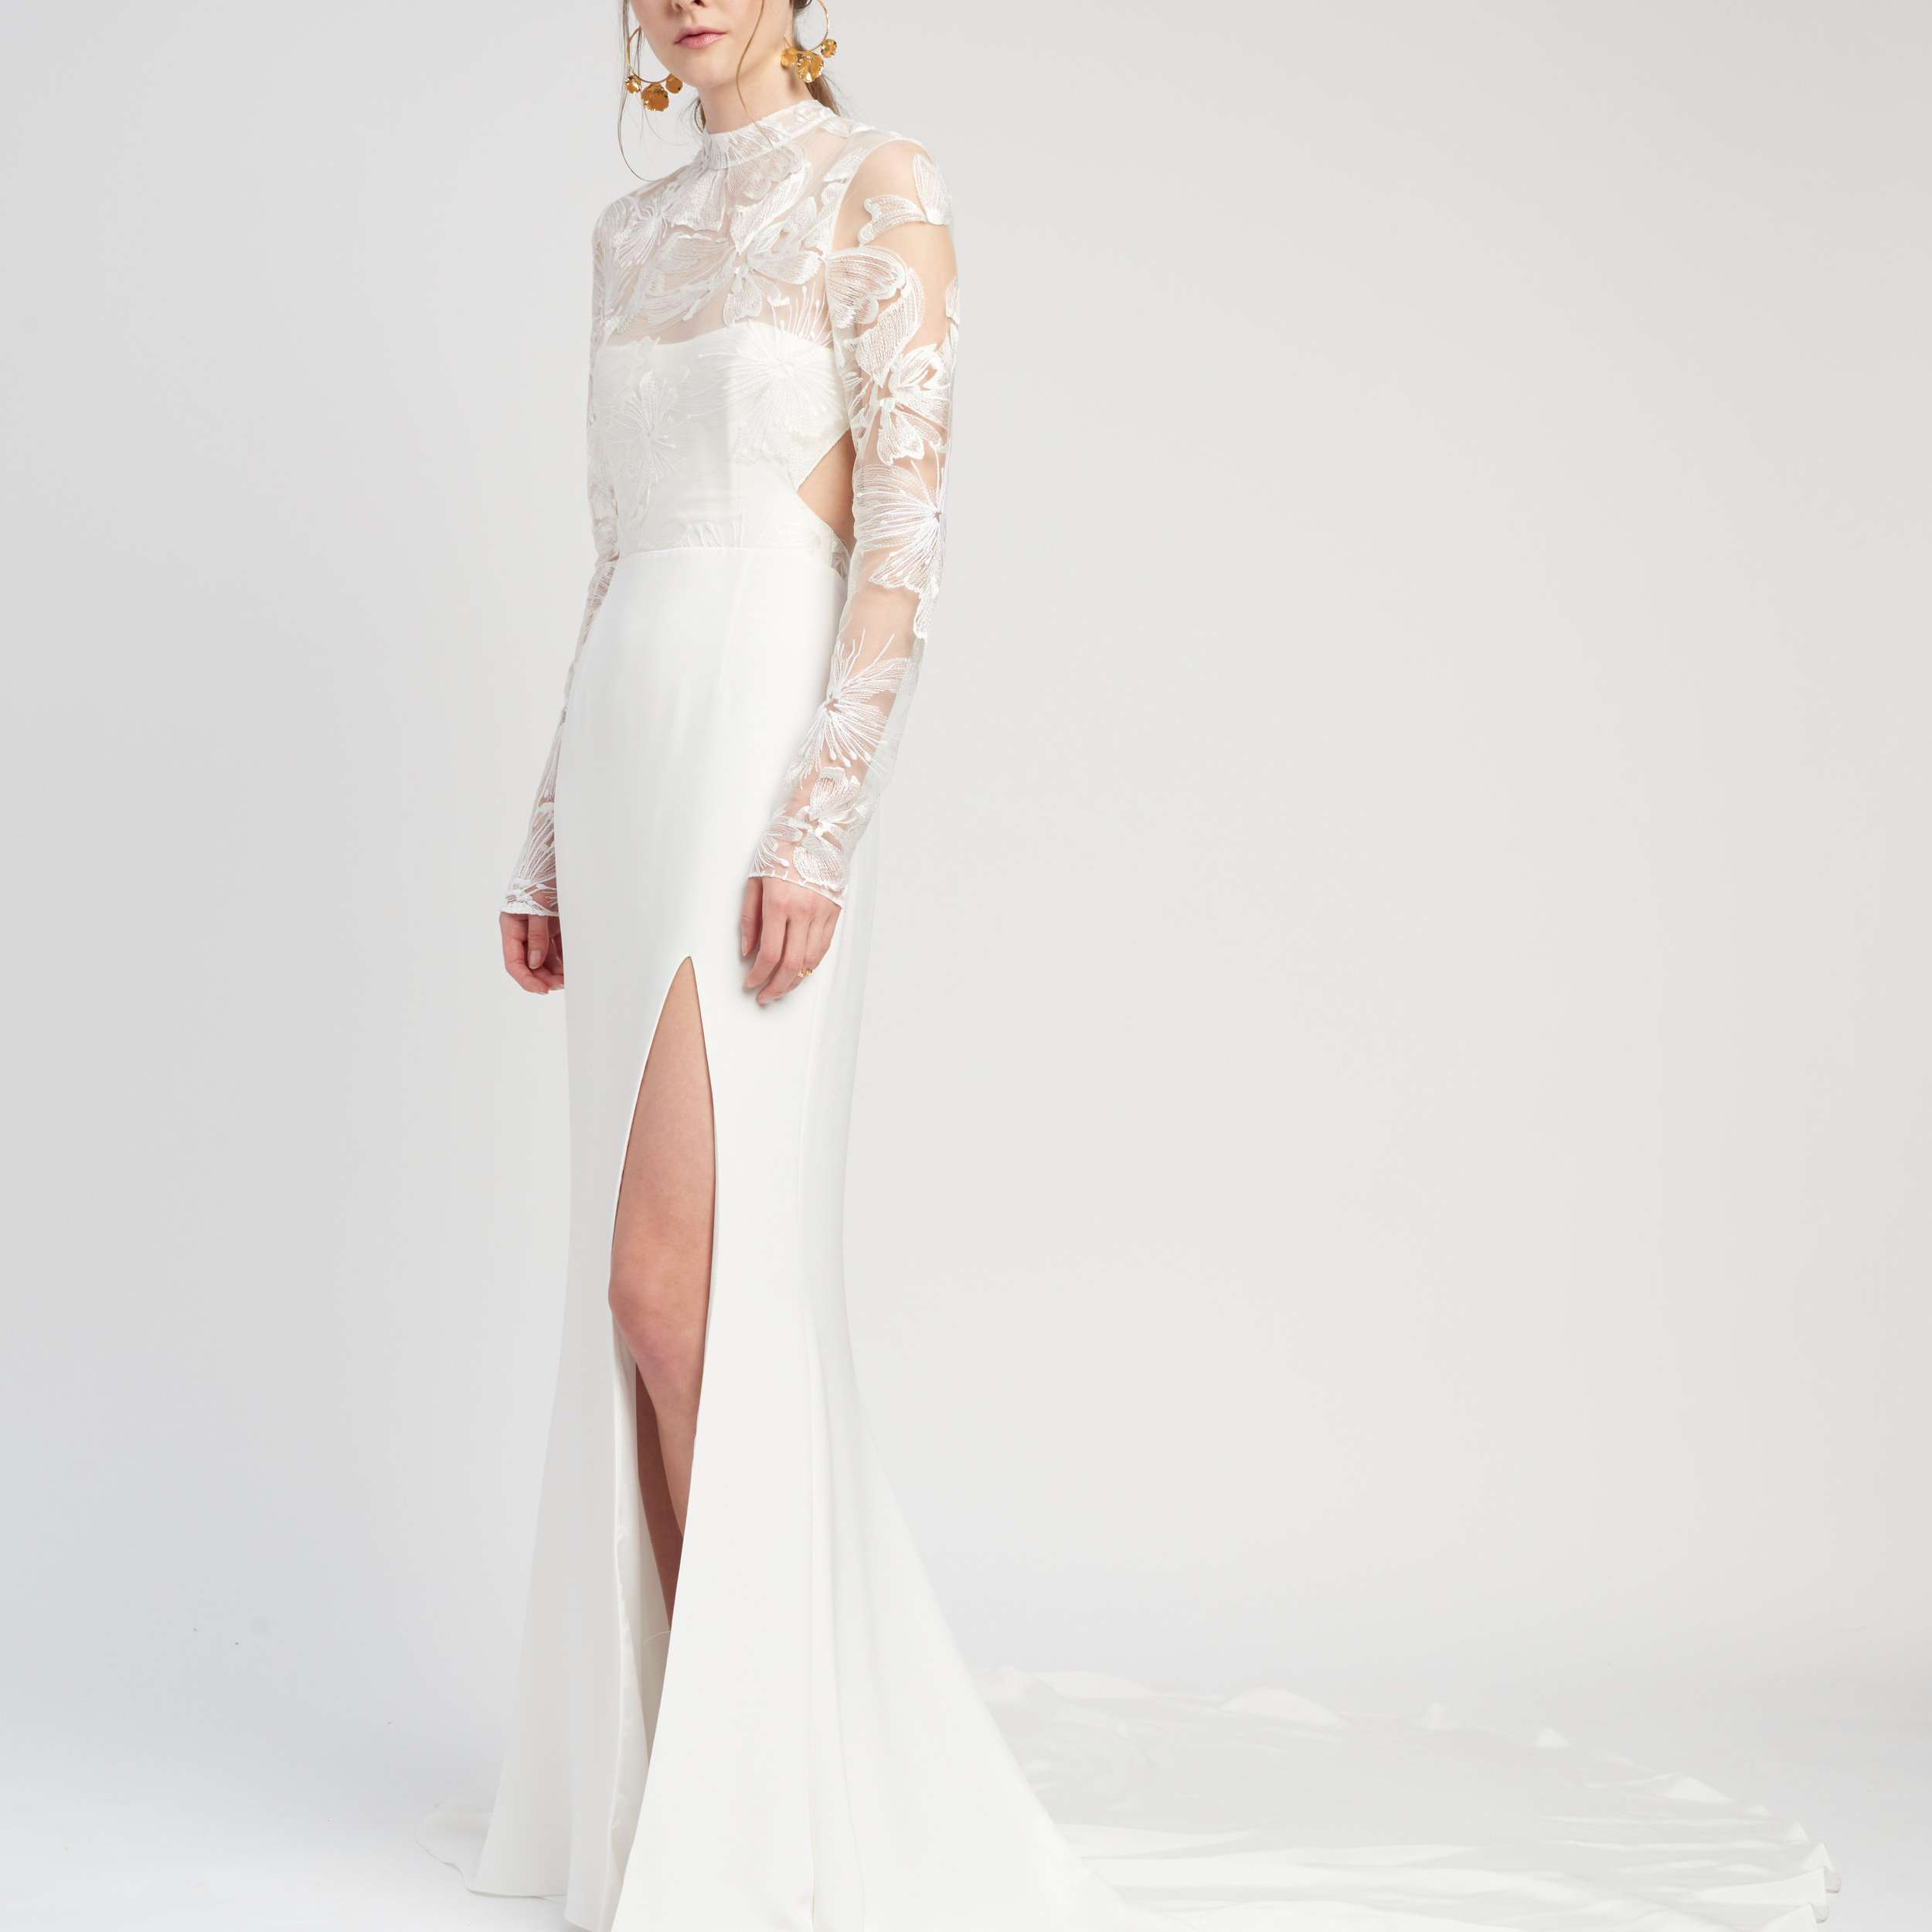 Model in illusion neckline and sleeve wedding gown